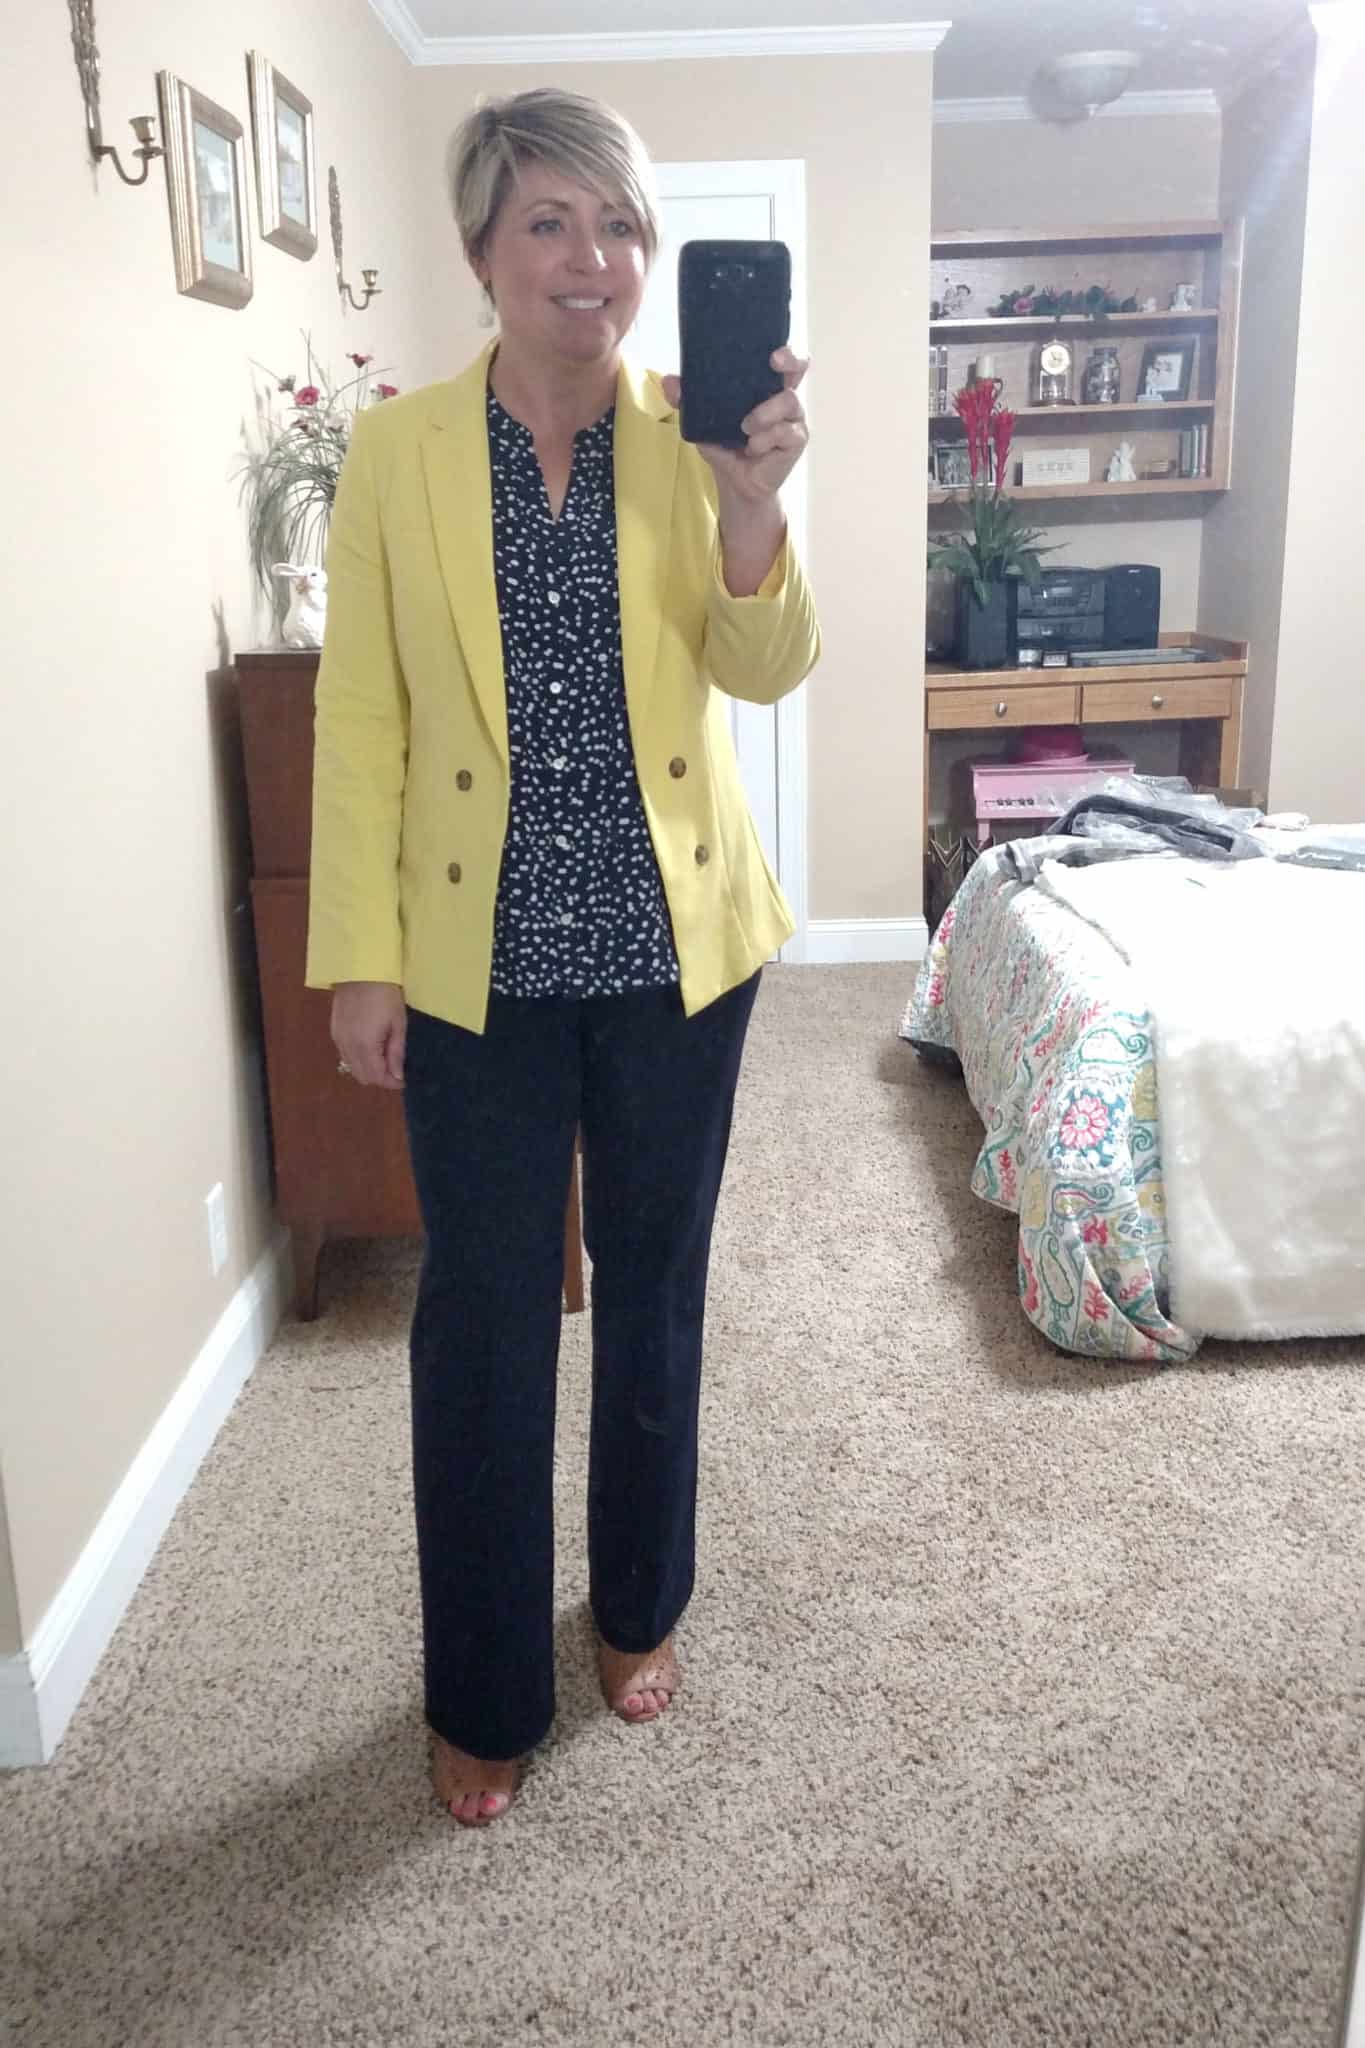 womens office attire, yellow blazer